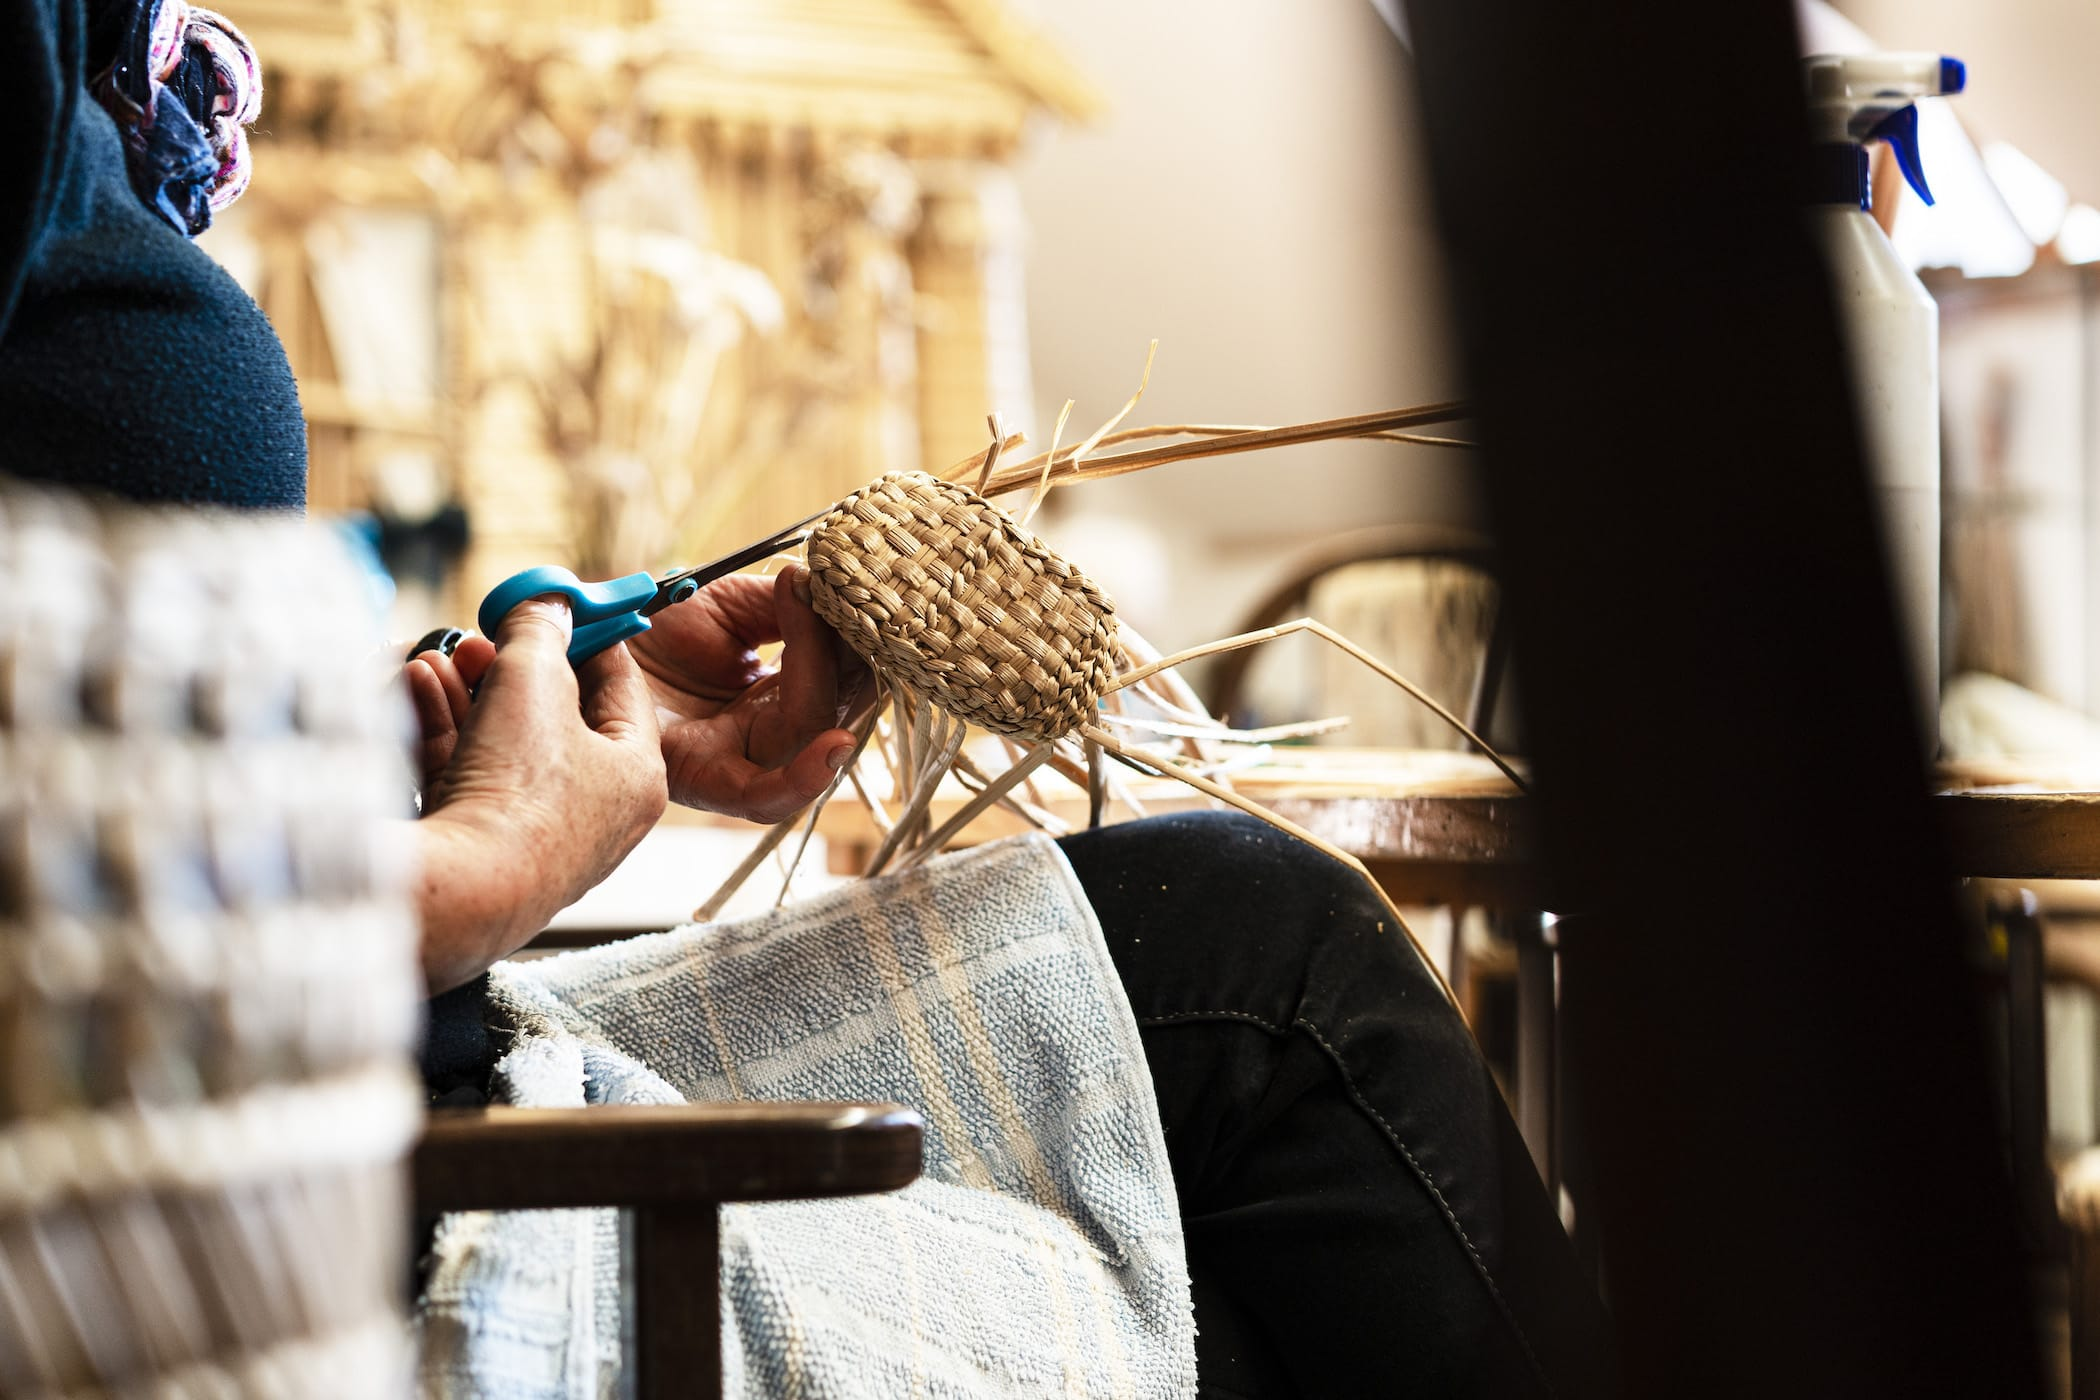 Cat tail weaving in Hungary. Photo: Pauline Thurn und Taxis